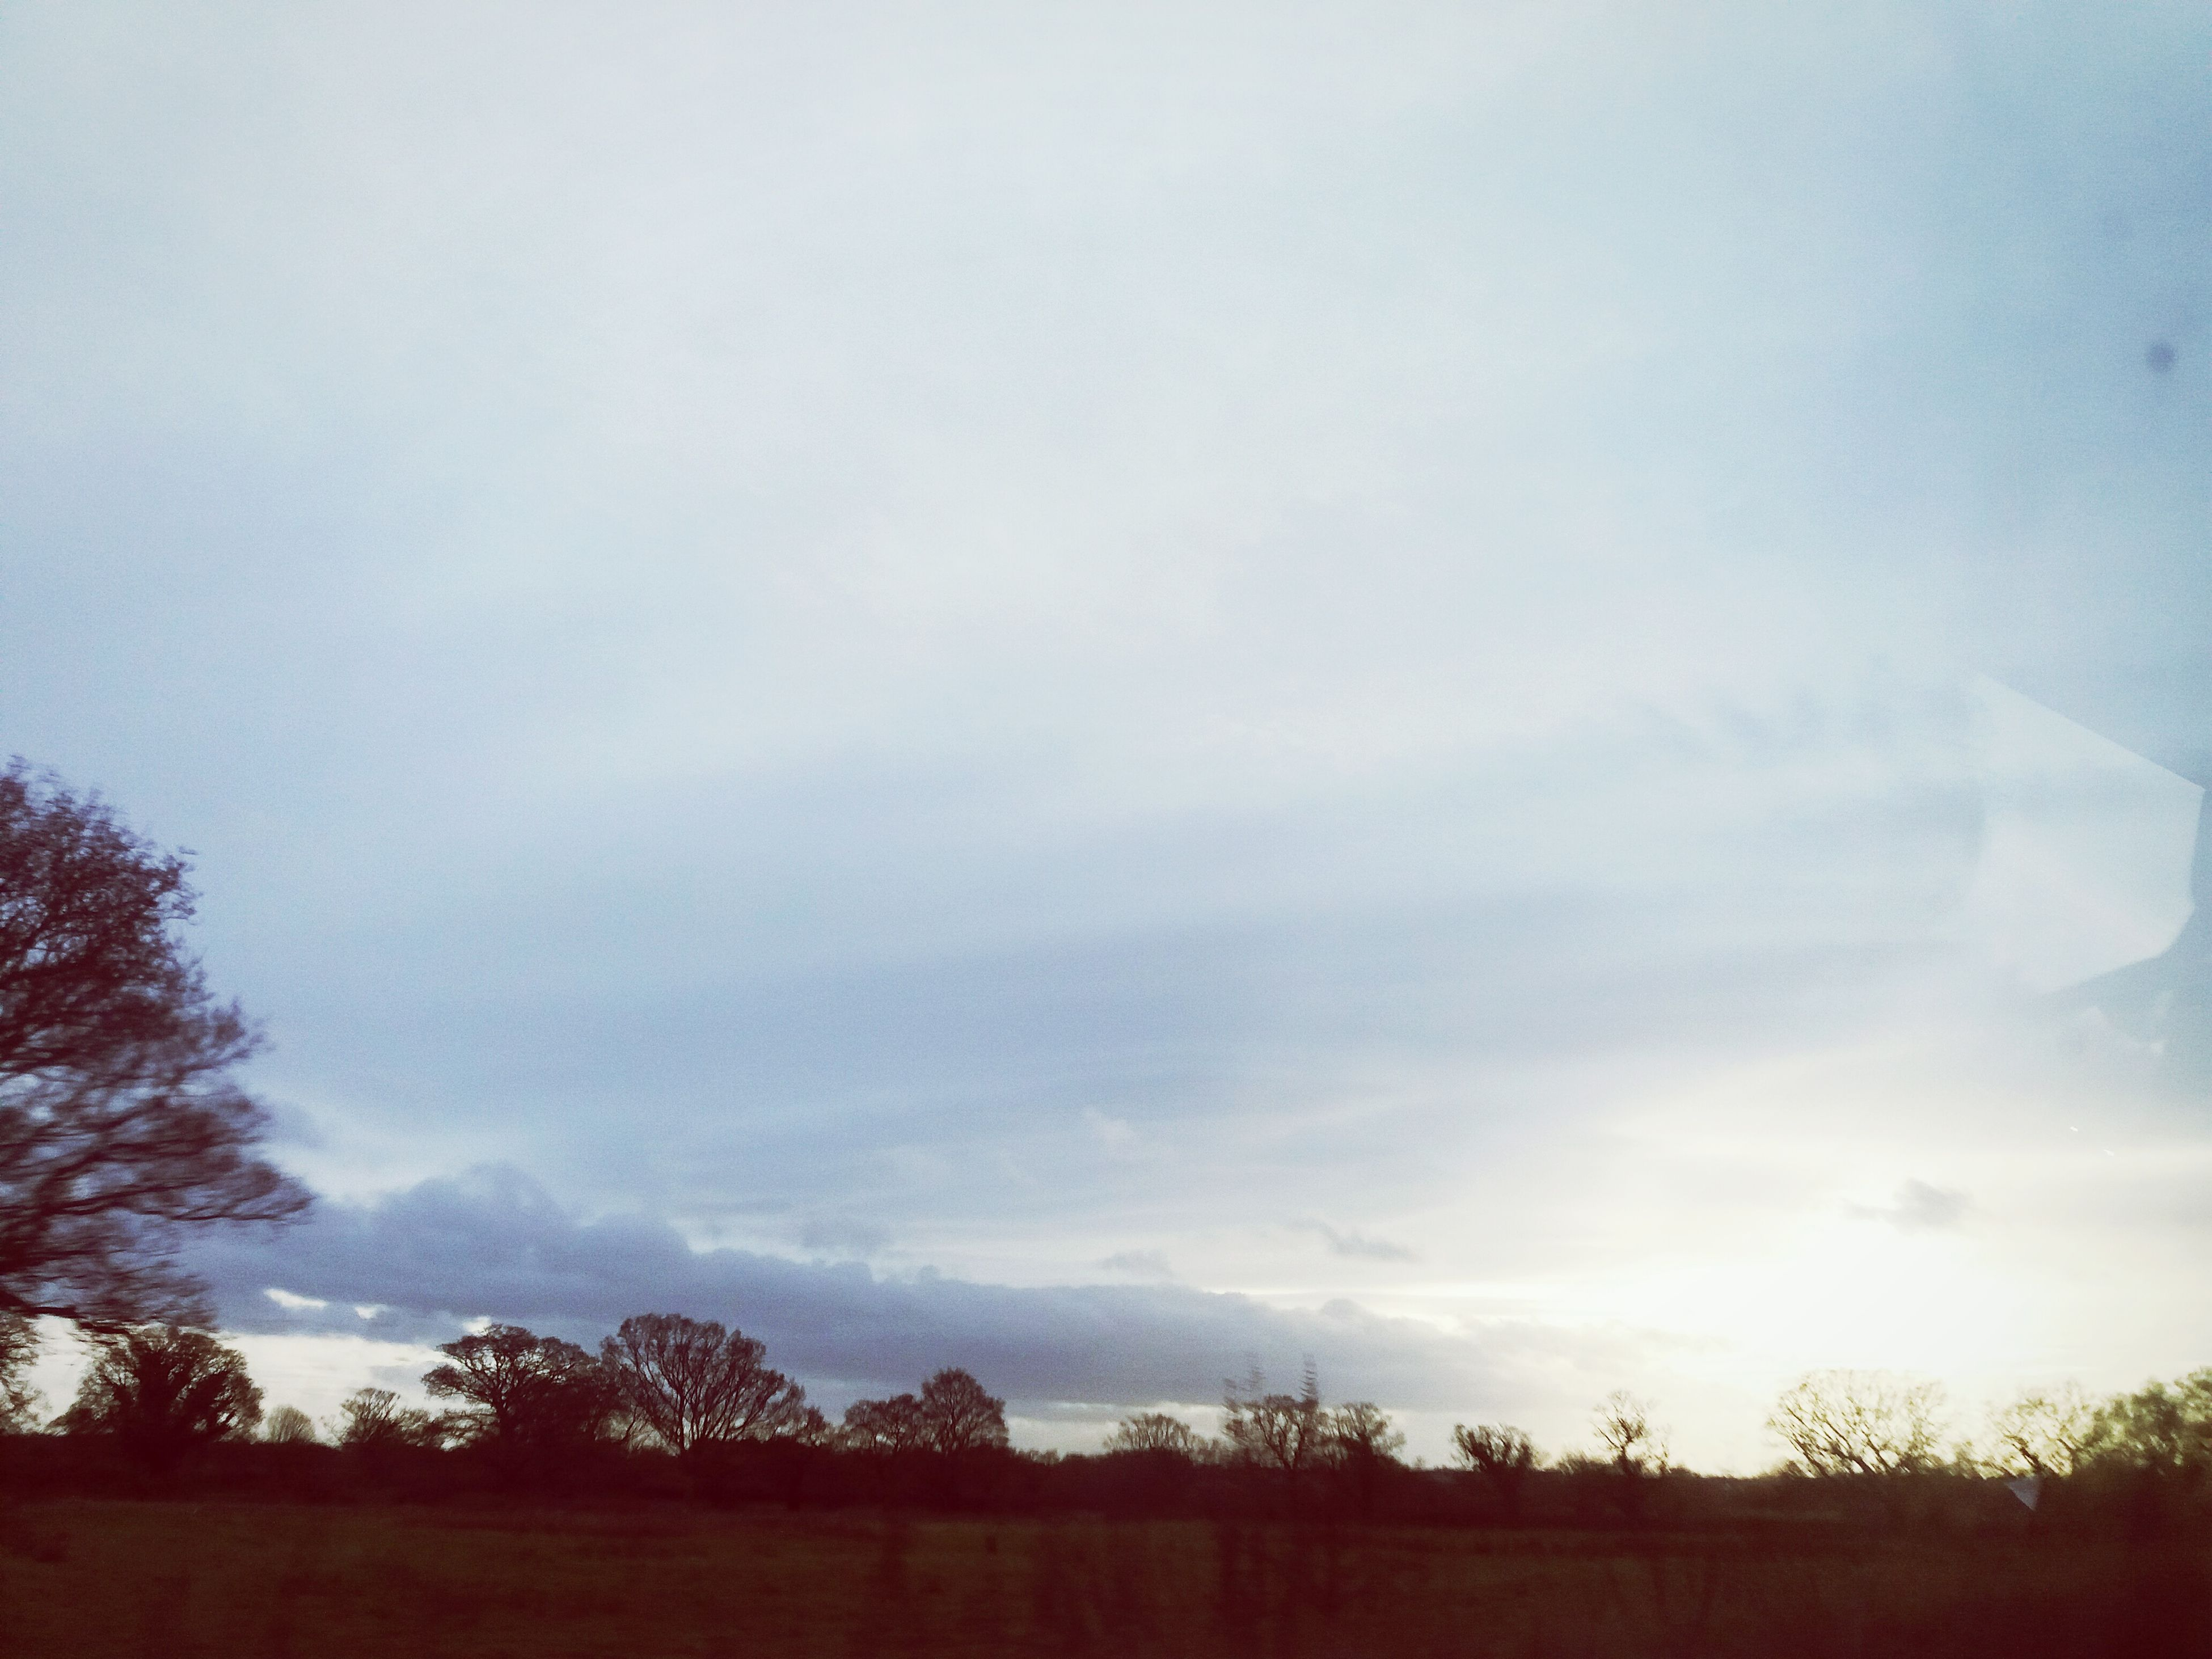 tree, sky, nature, tranquility, tranquil scene, beauty in nature, outdoors, silhouette, no people, low angle view, scenics, cloud - sky, day